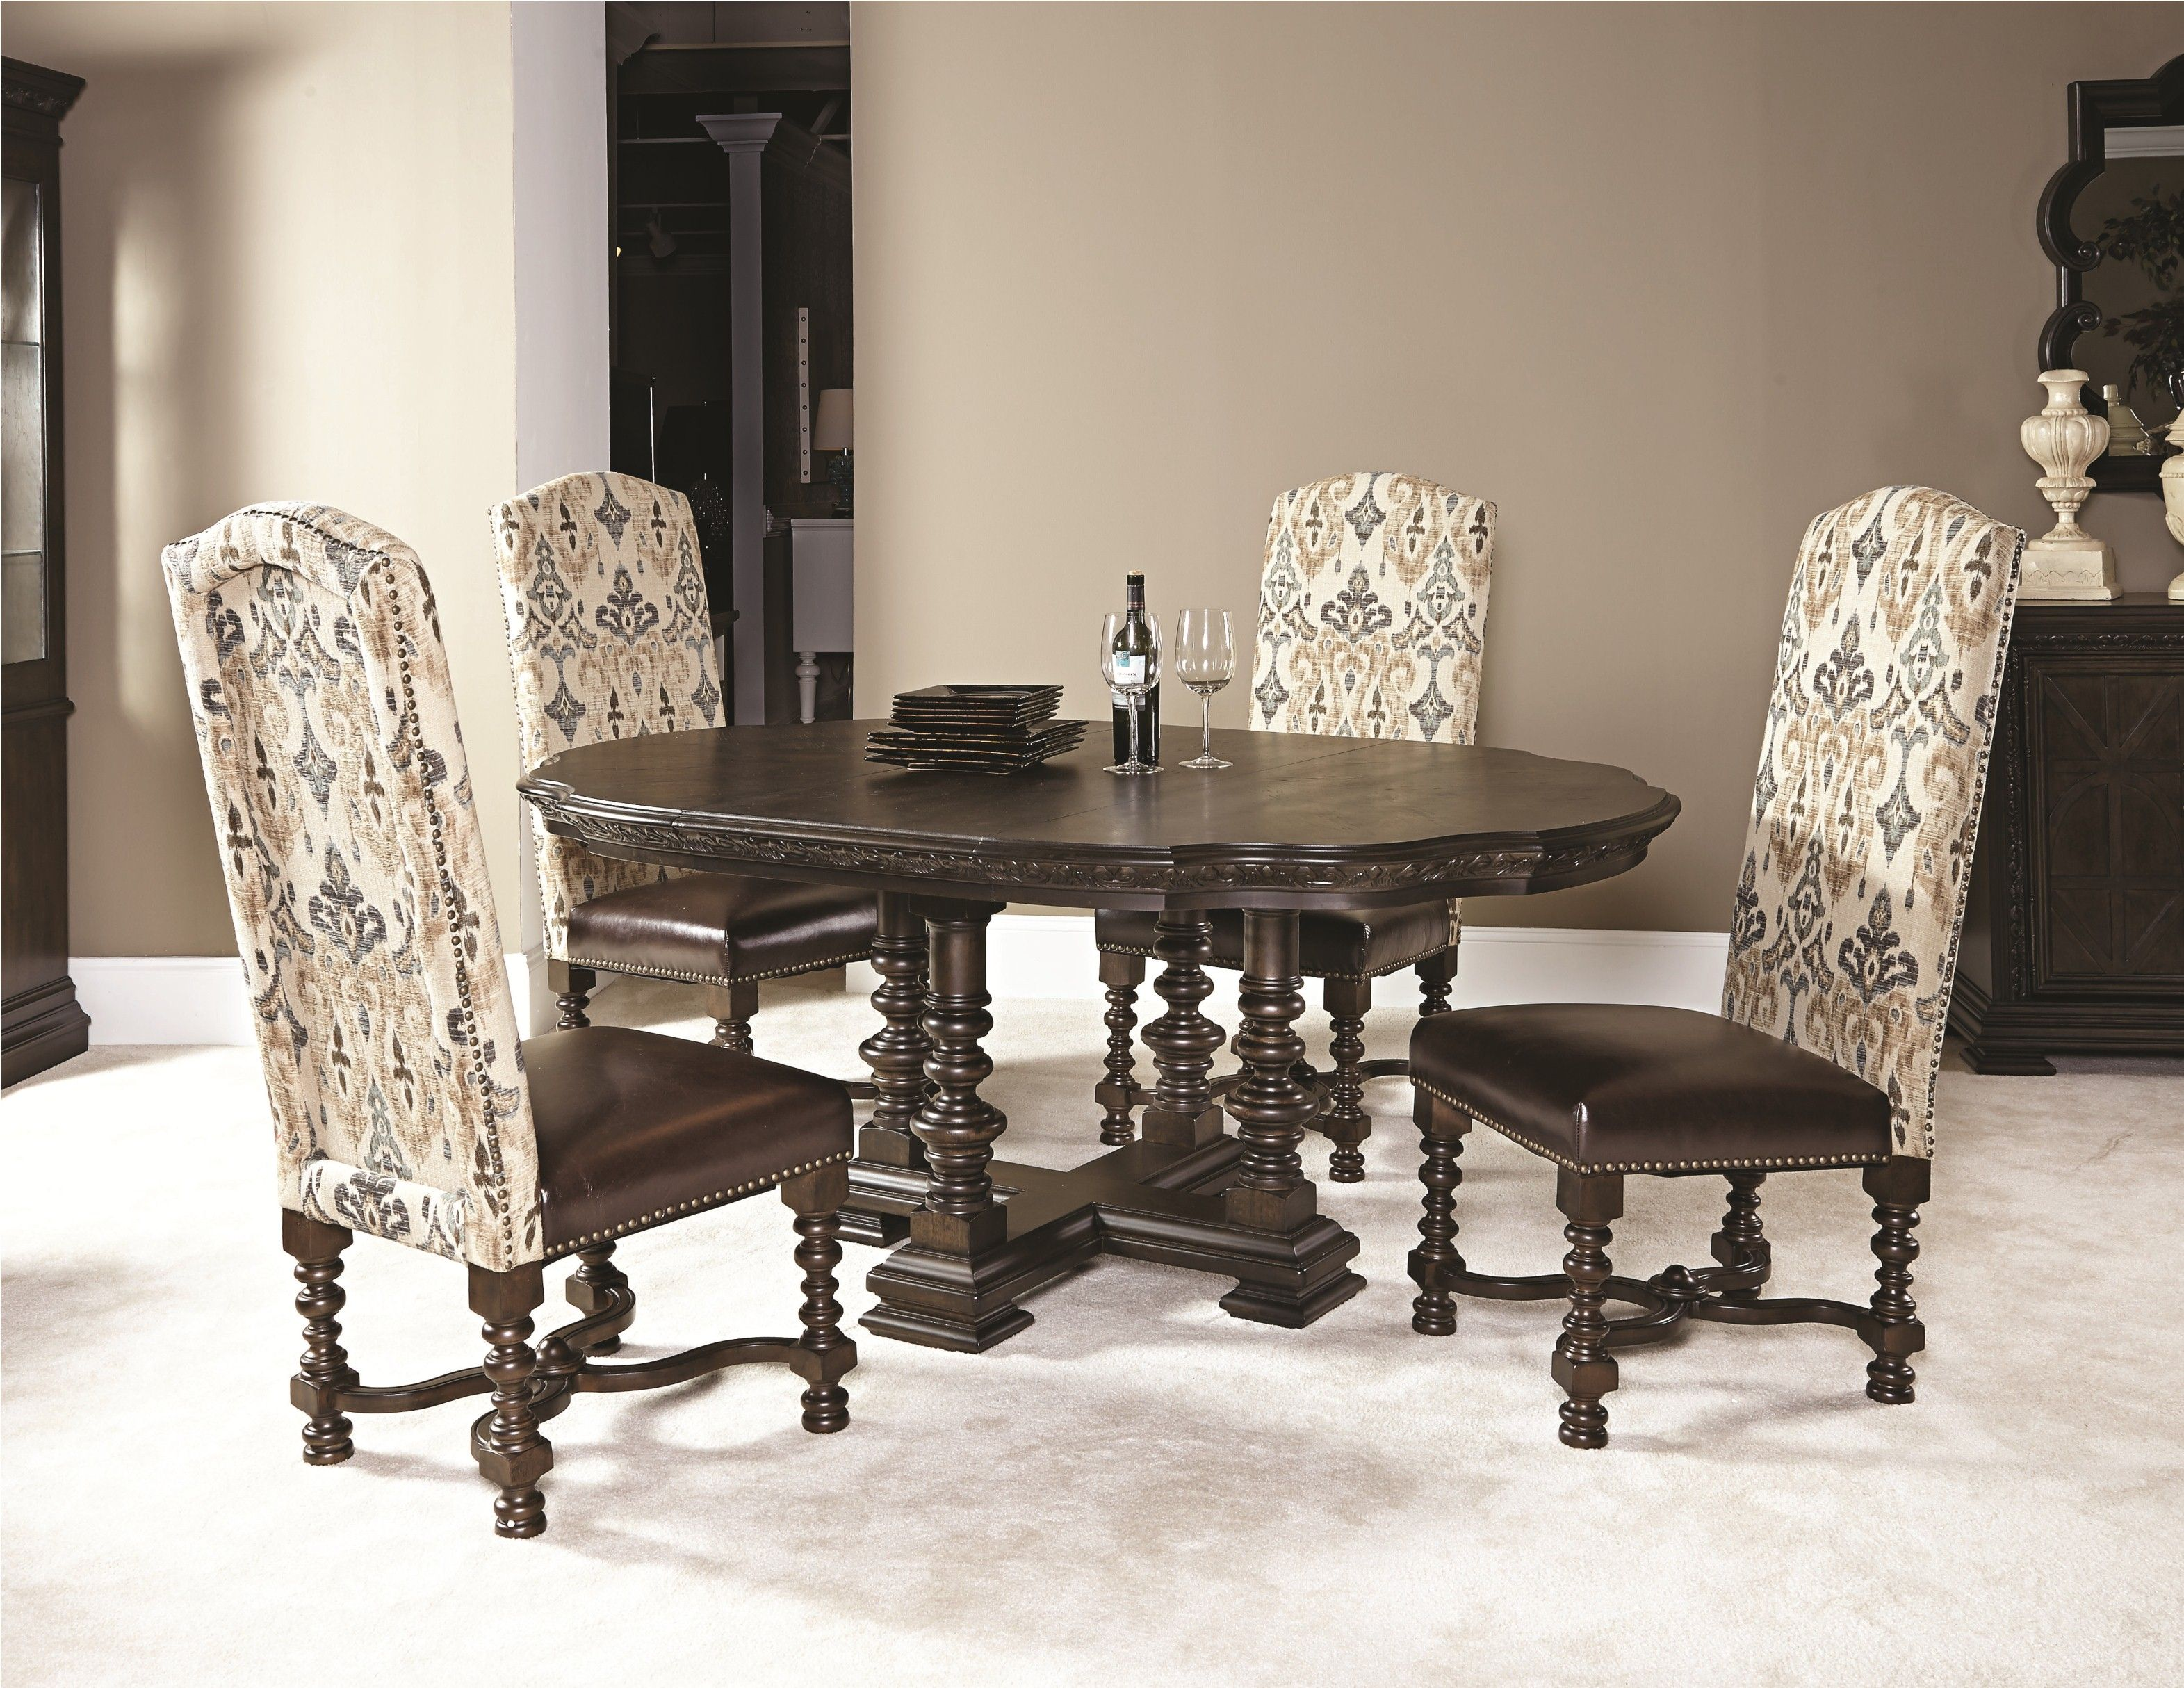 A 60inch round dining table from the Casalone collection by